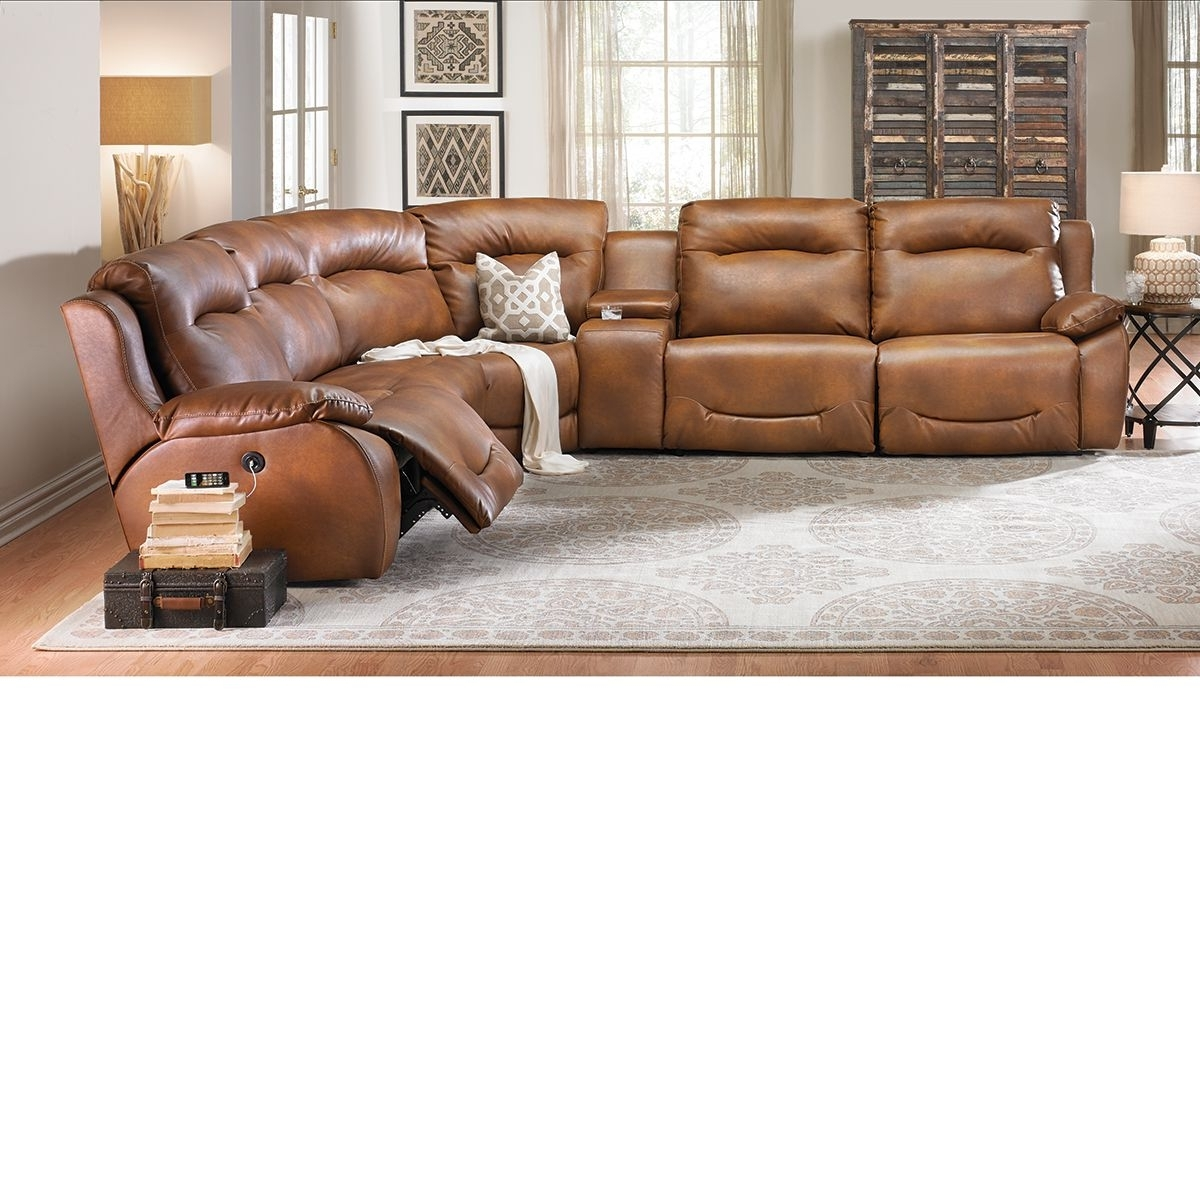 The Dump Furniture Outlet – Closeout: 6 Piece Power Plus Sectional For Most Popular Closeout Sofas (View 13 of 15)